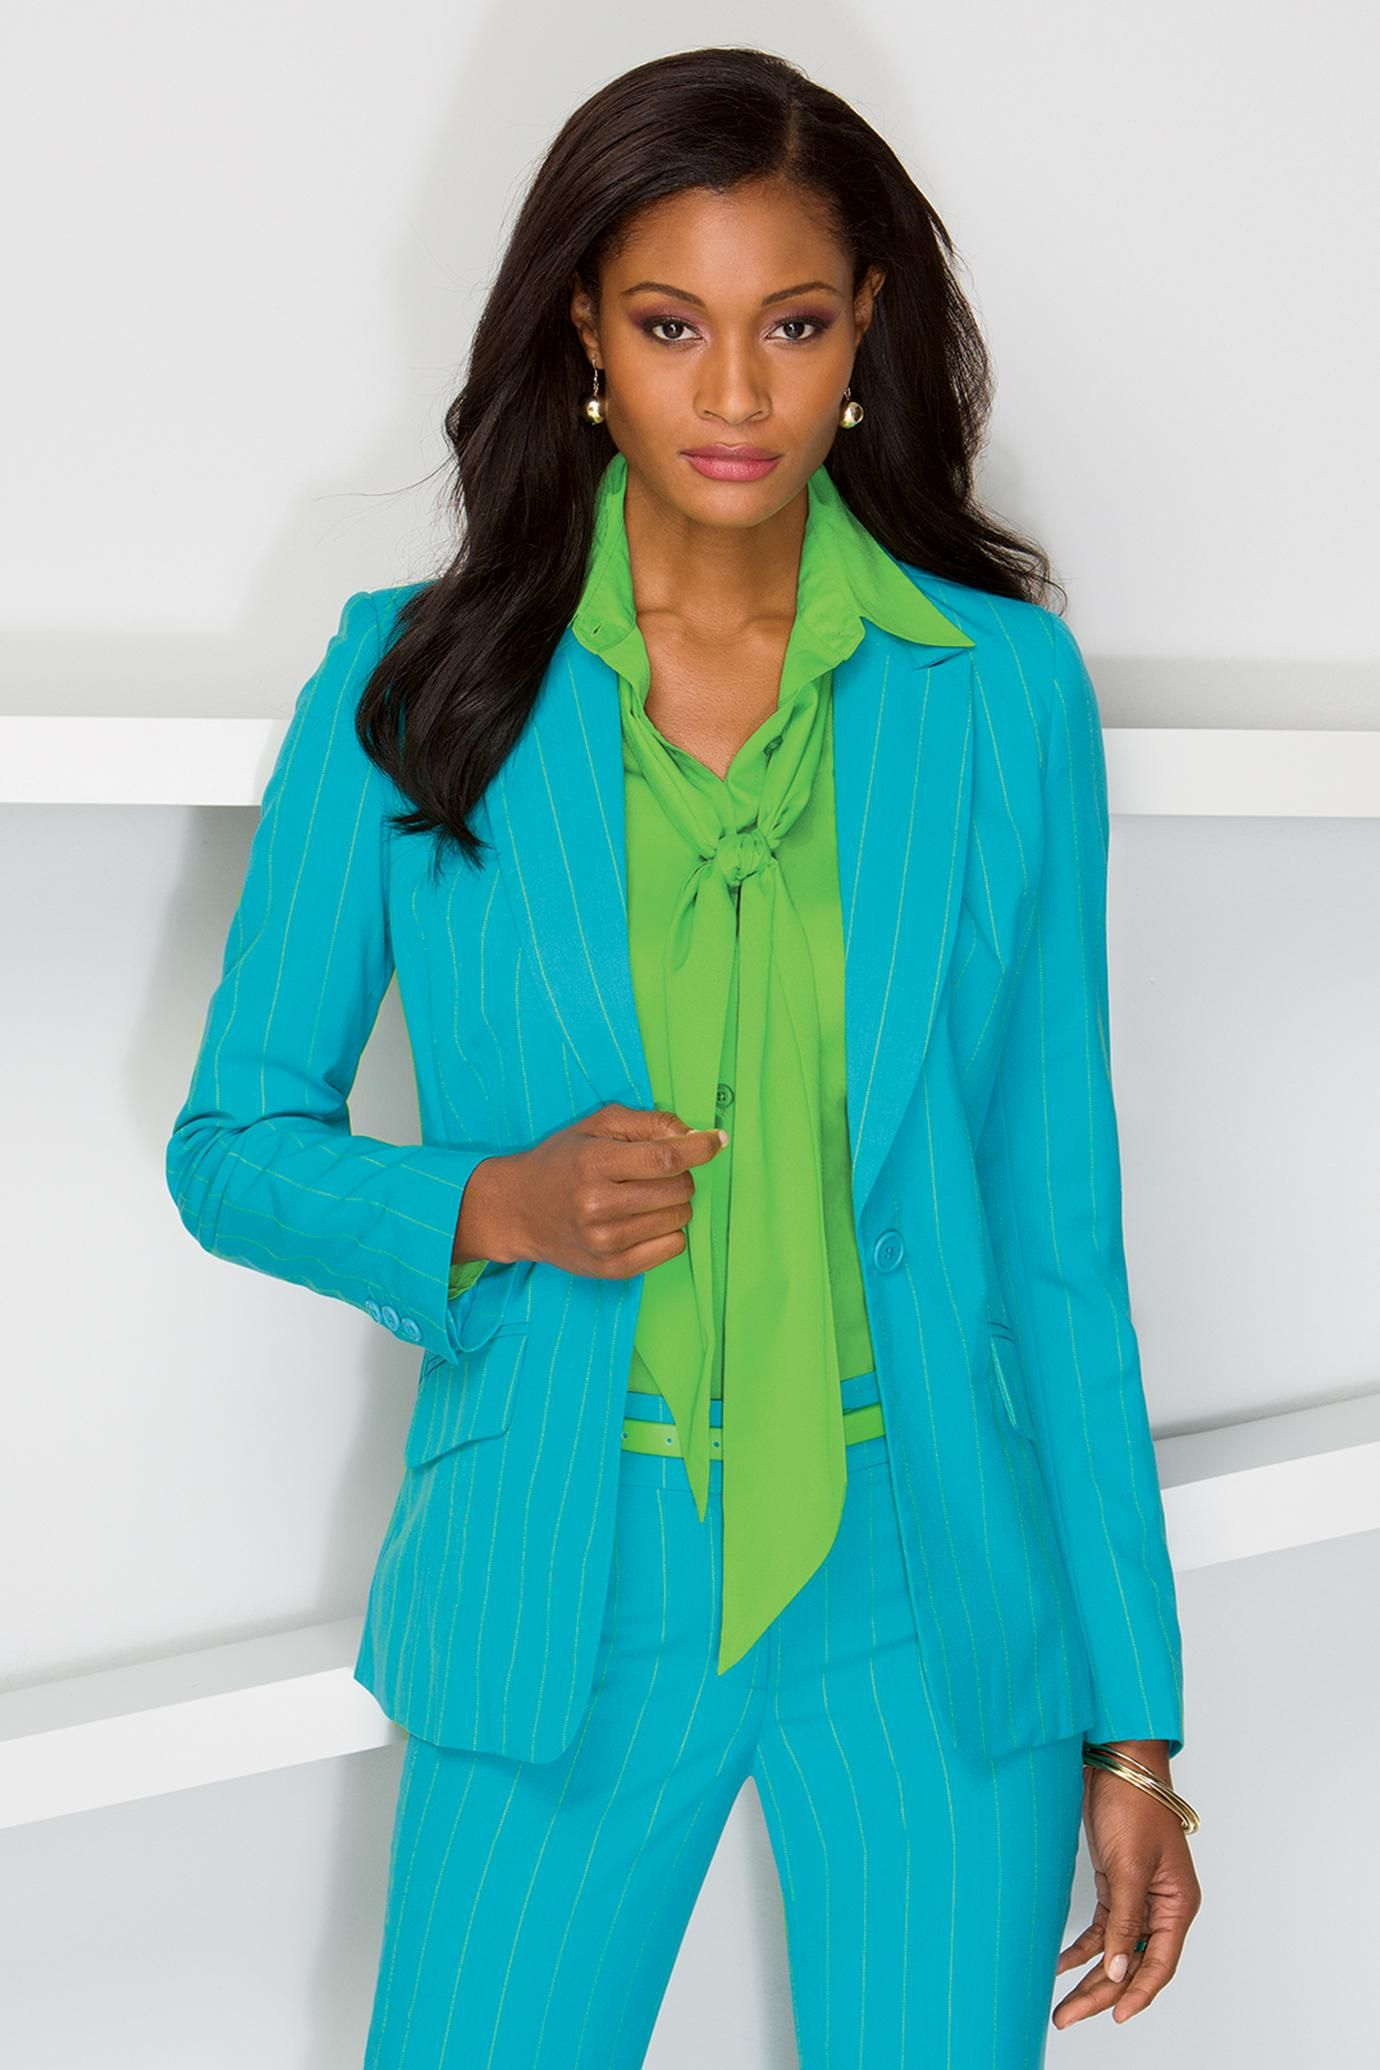 Pinstripe Suit Blazer - Coordinated Suiting Separates for Women in ...